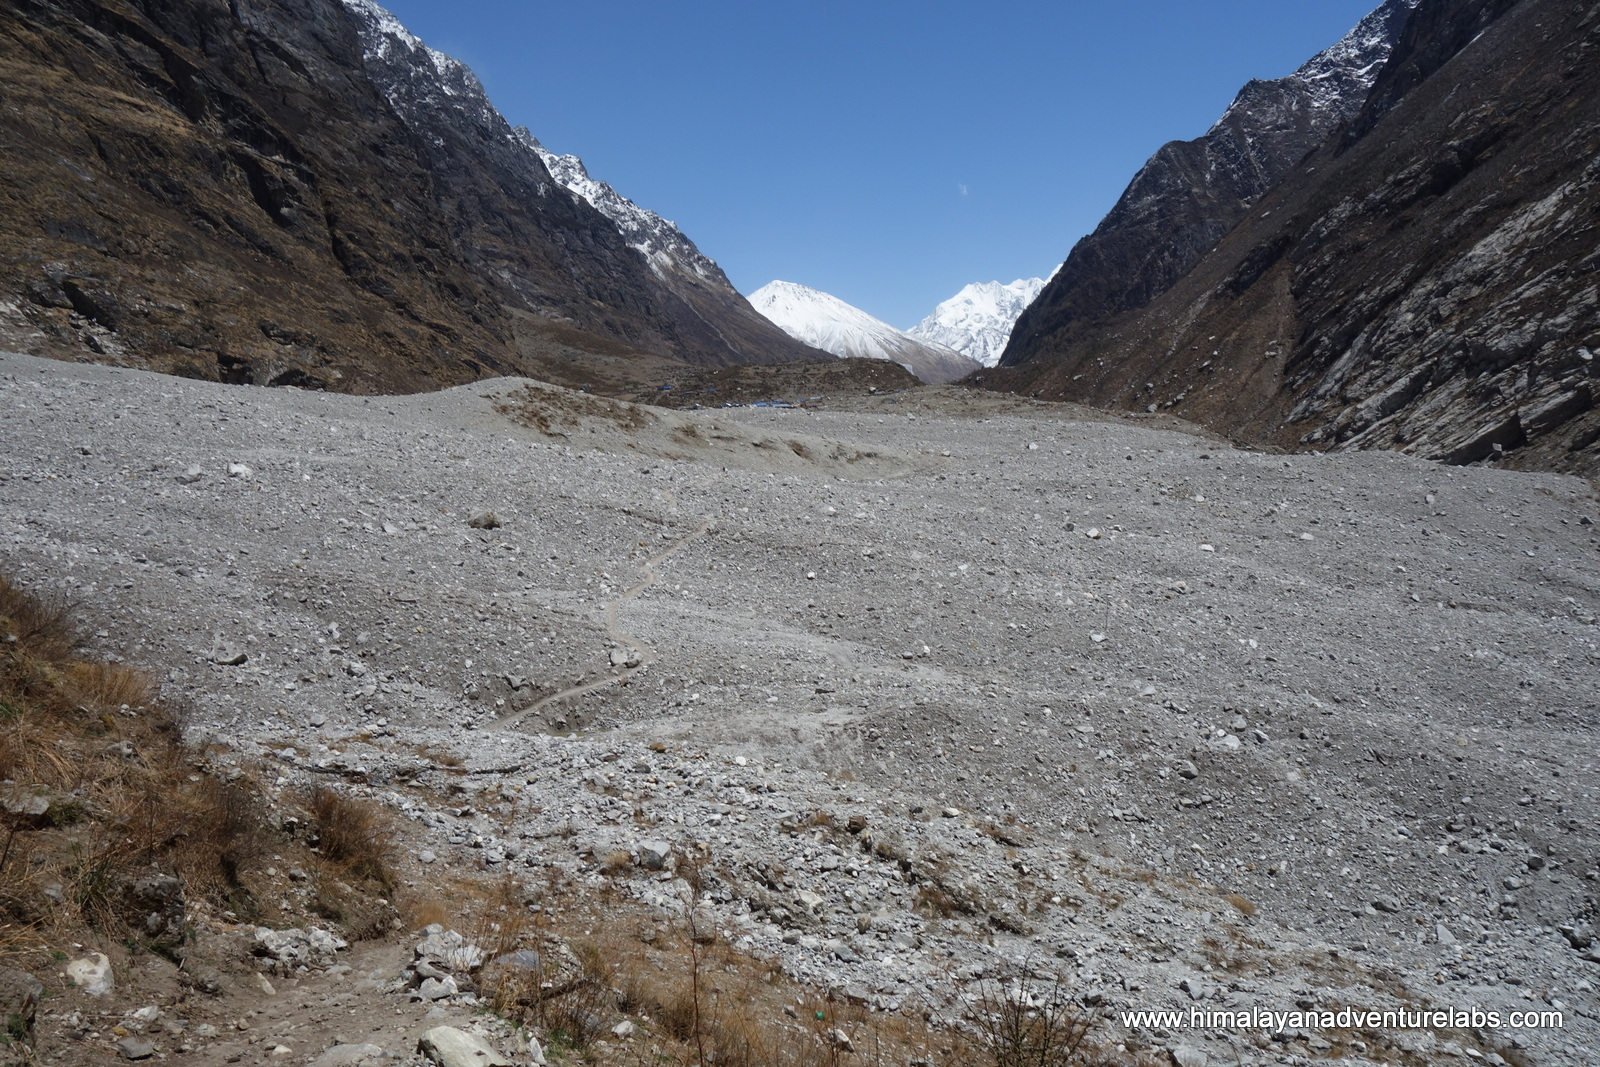 Where the former village of Langtang once stood